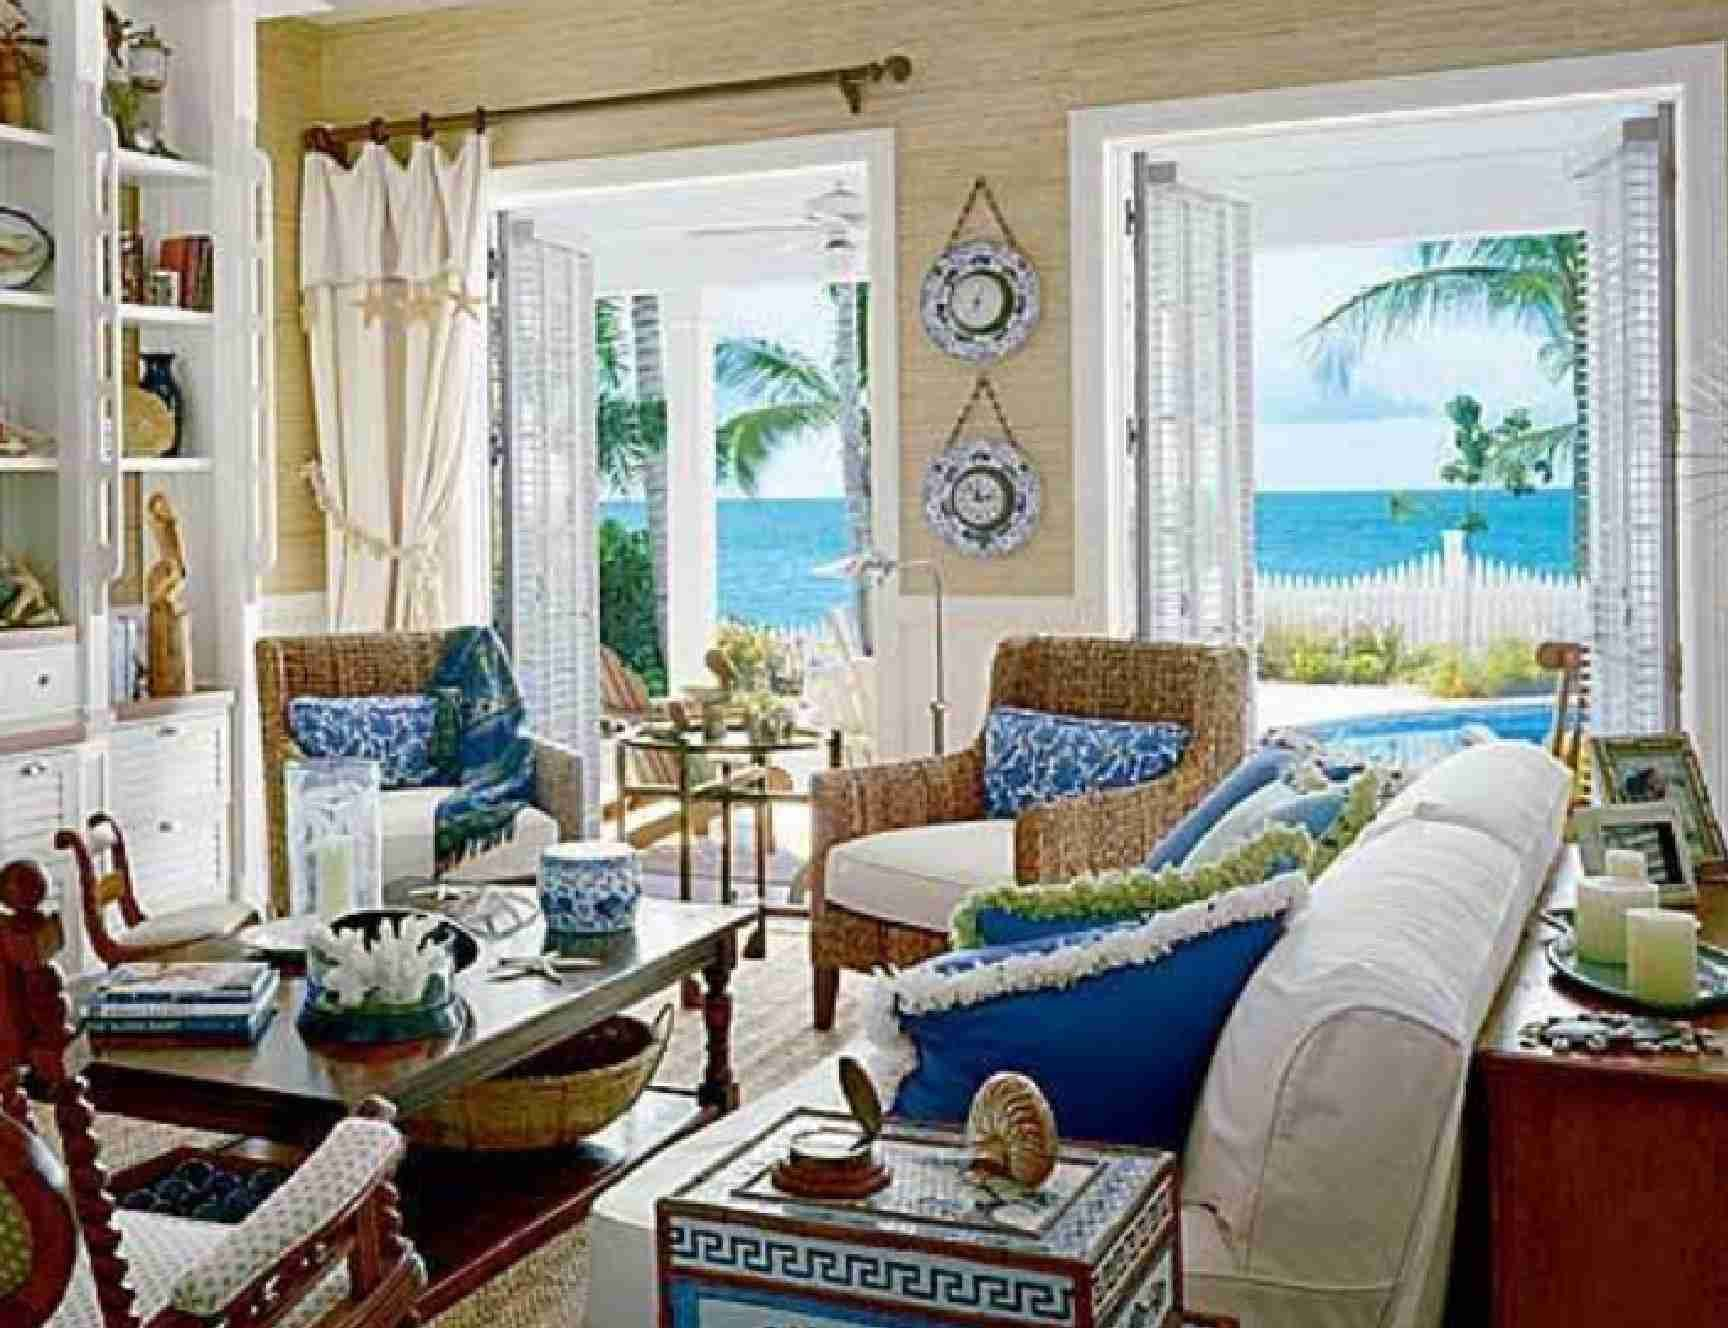 Beach Living Room Design Inspiration Google Image Result For Httpwwwhomeinnenwpcontent Decorating Design